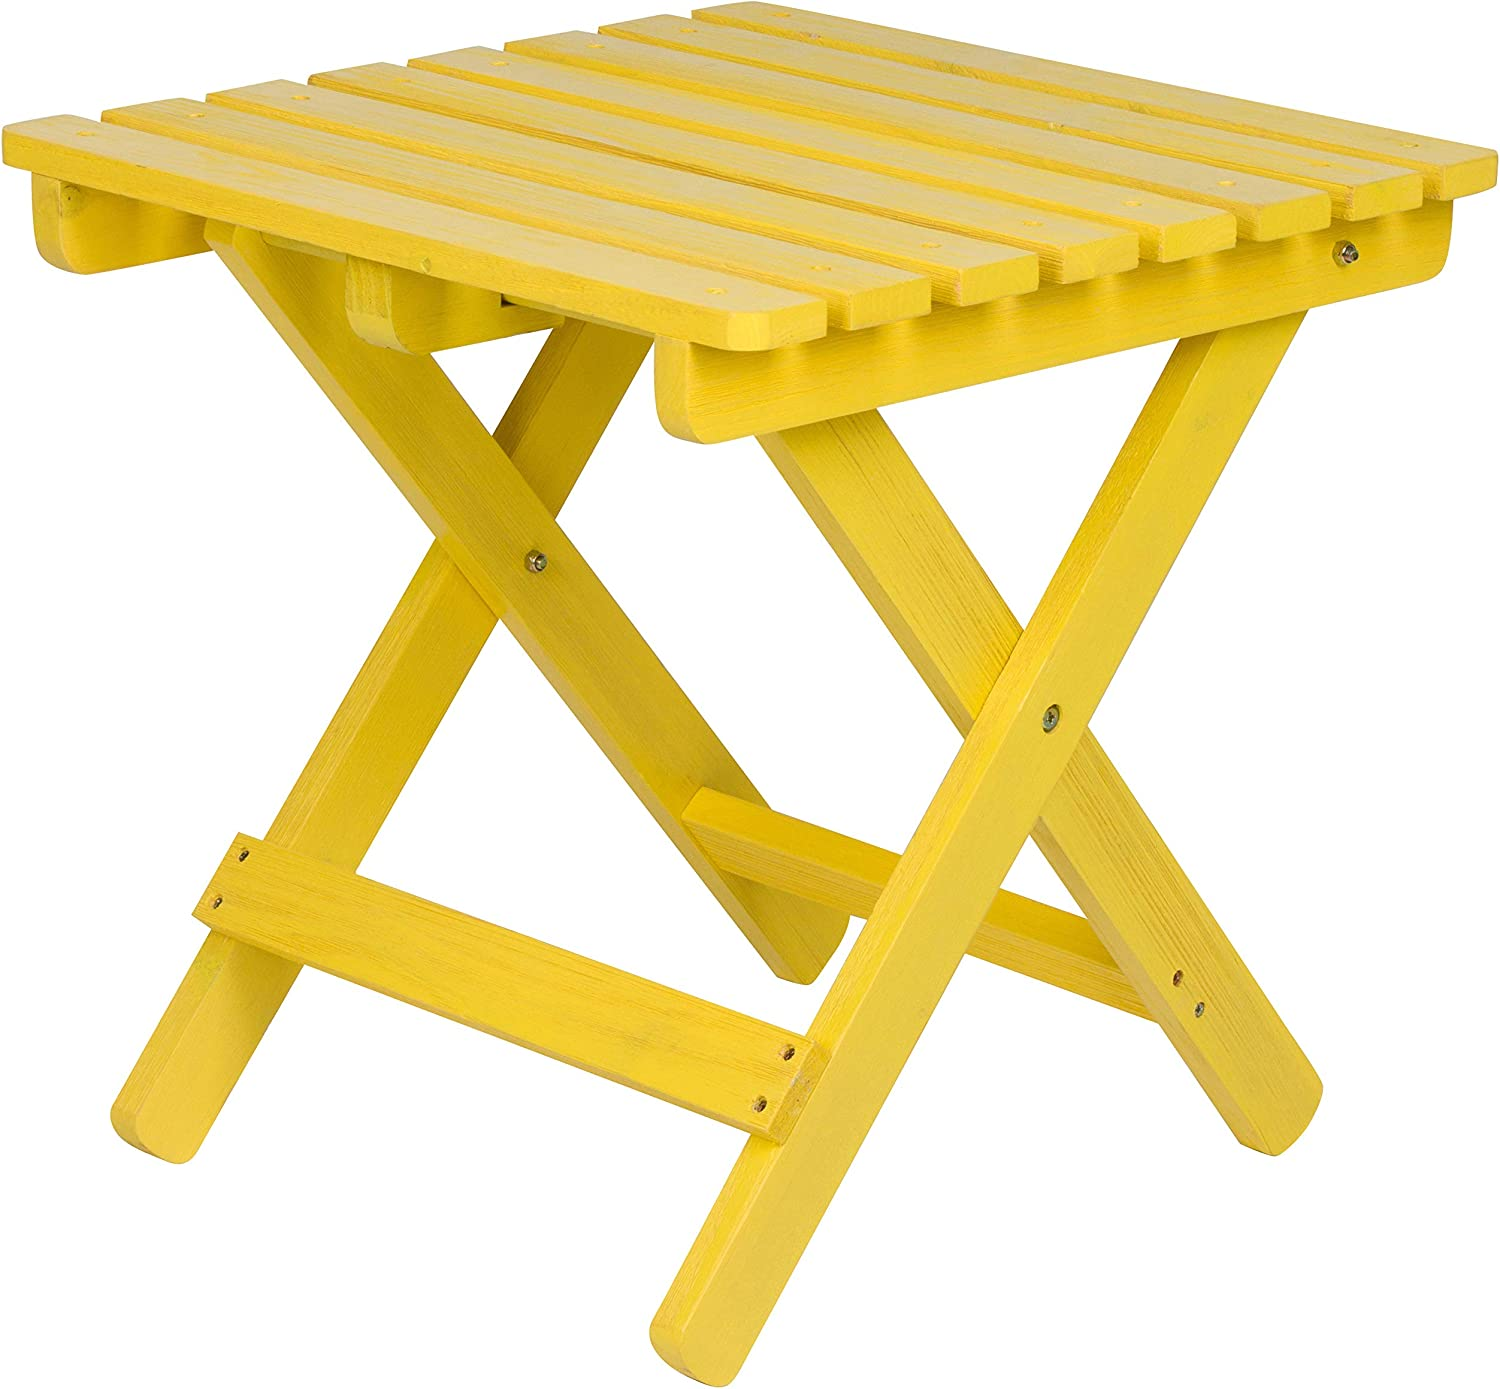 Shine Company 5109SF Square Folding Wooden Side Table, Sunflower